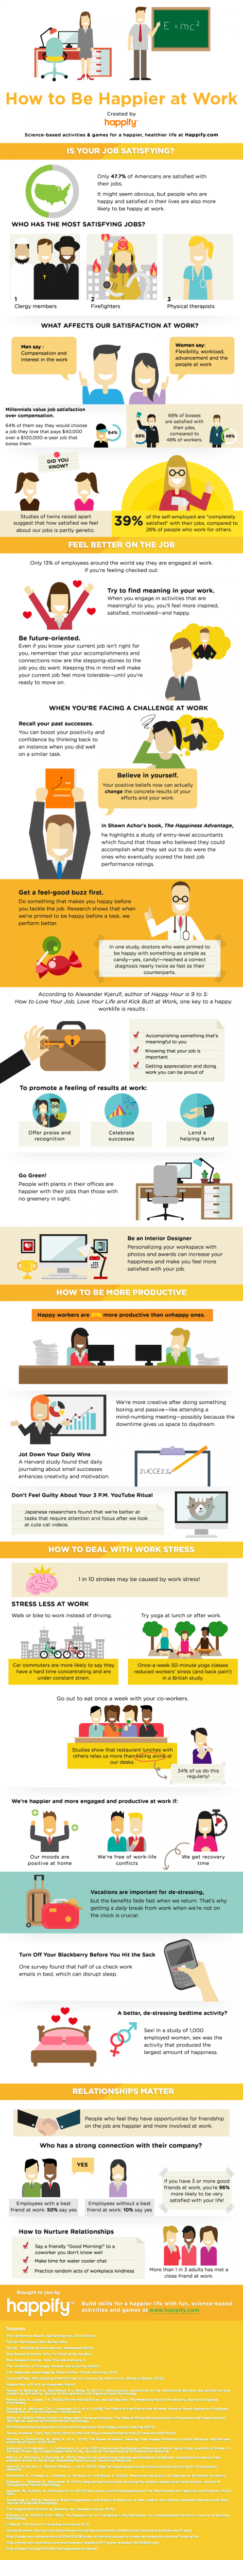 How to be happier at work [INFOGRAPHIC] by happify